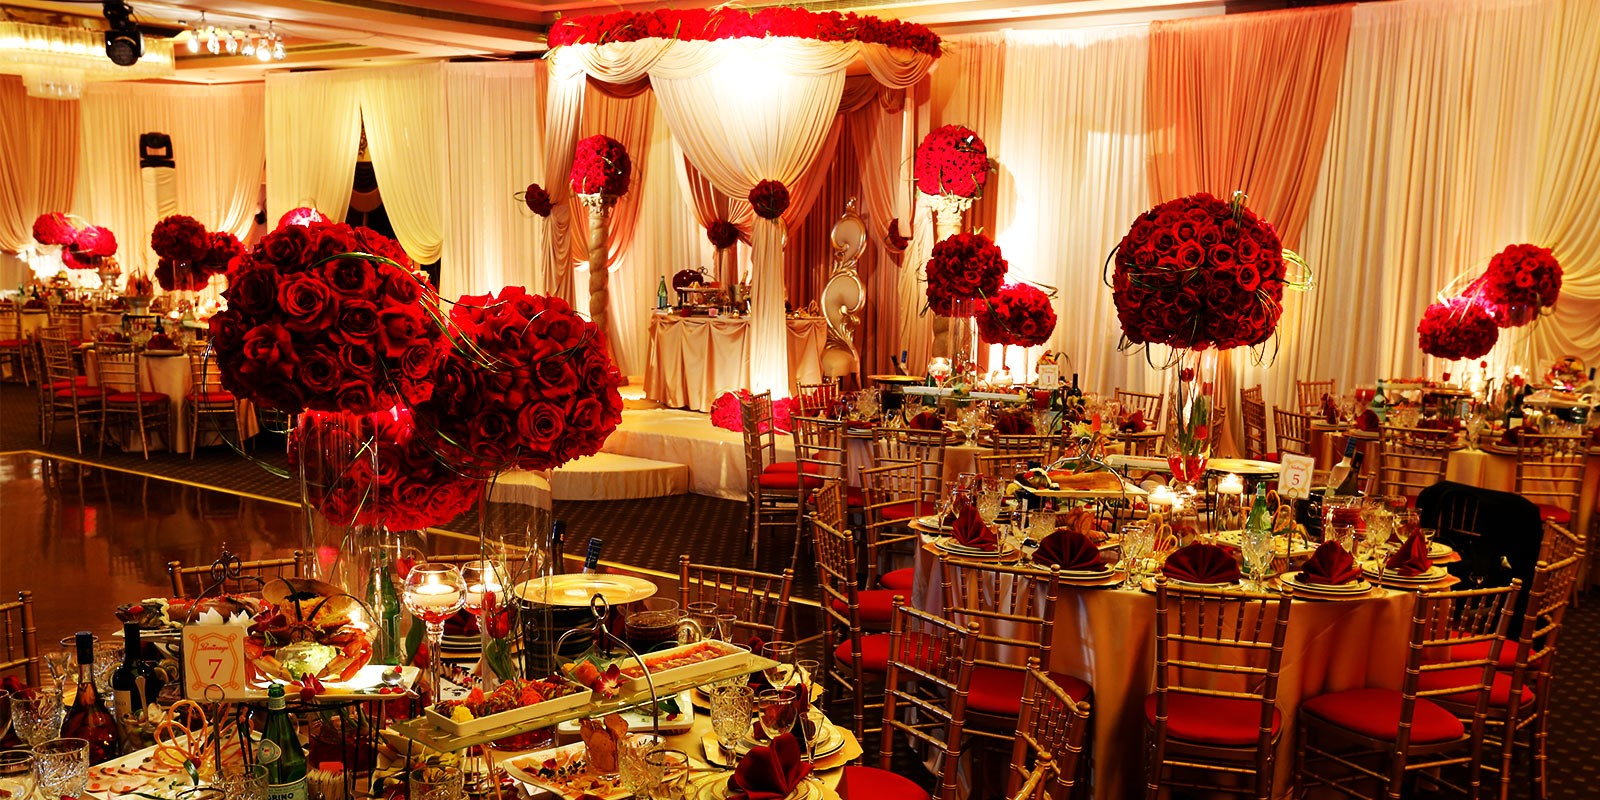 baraat decor 4.jpg